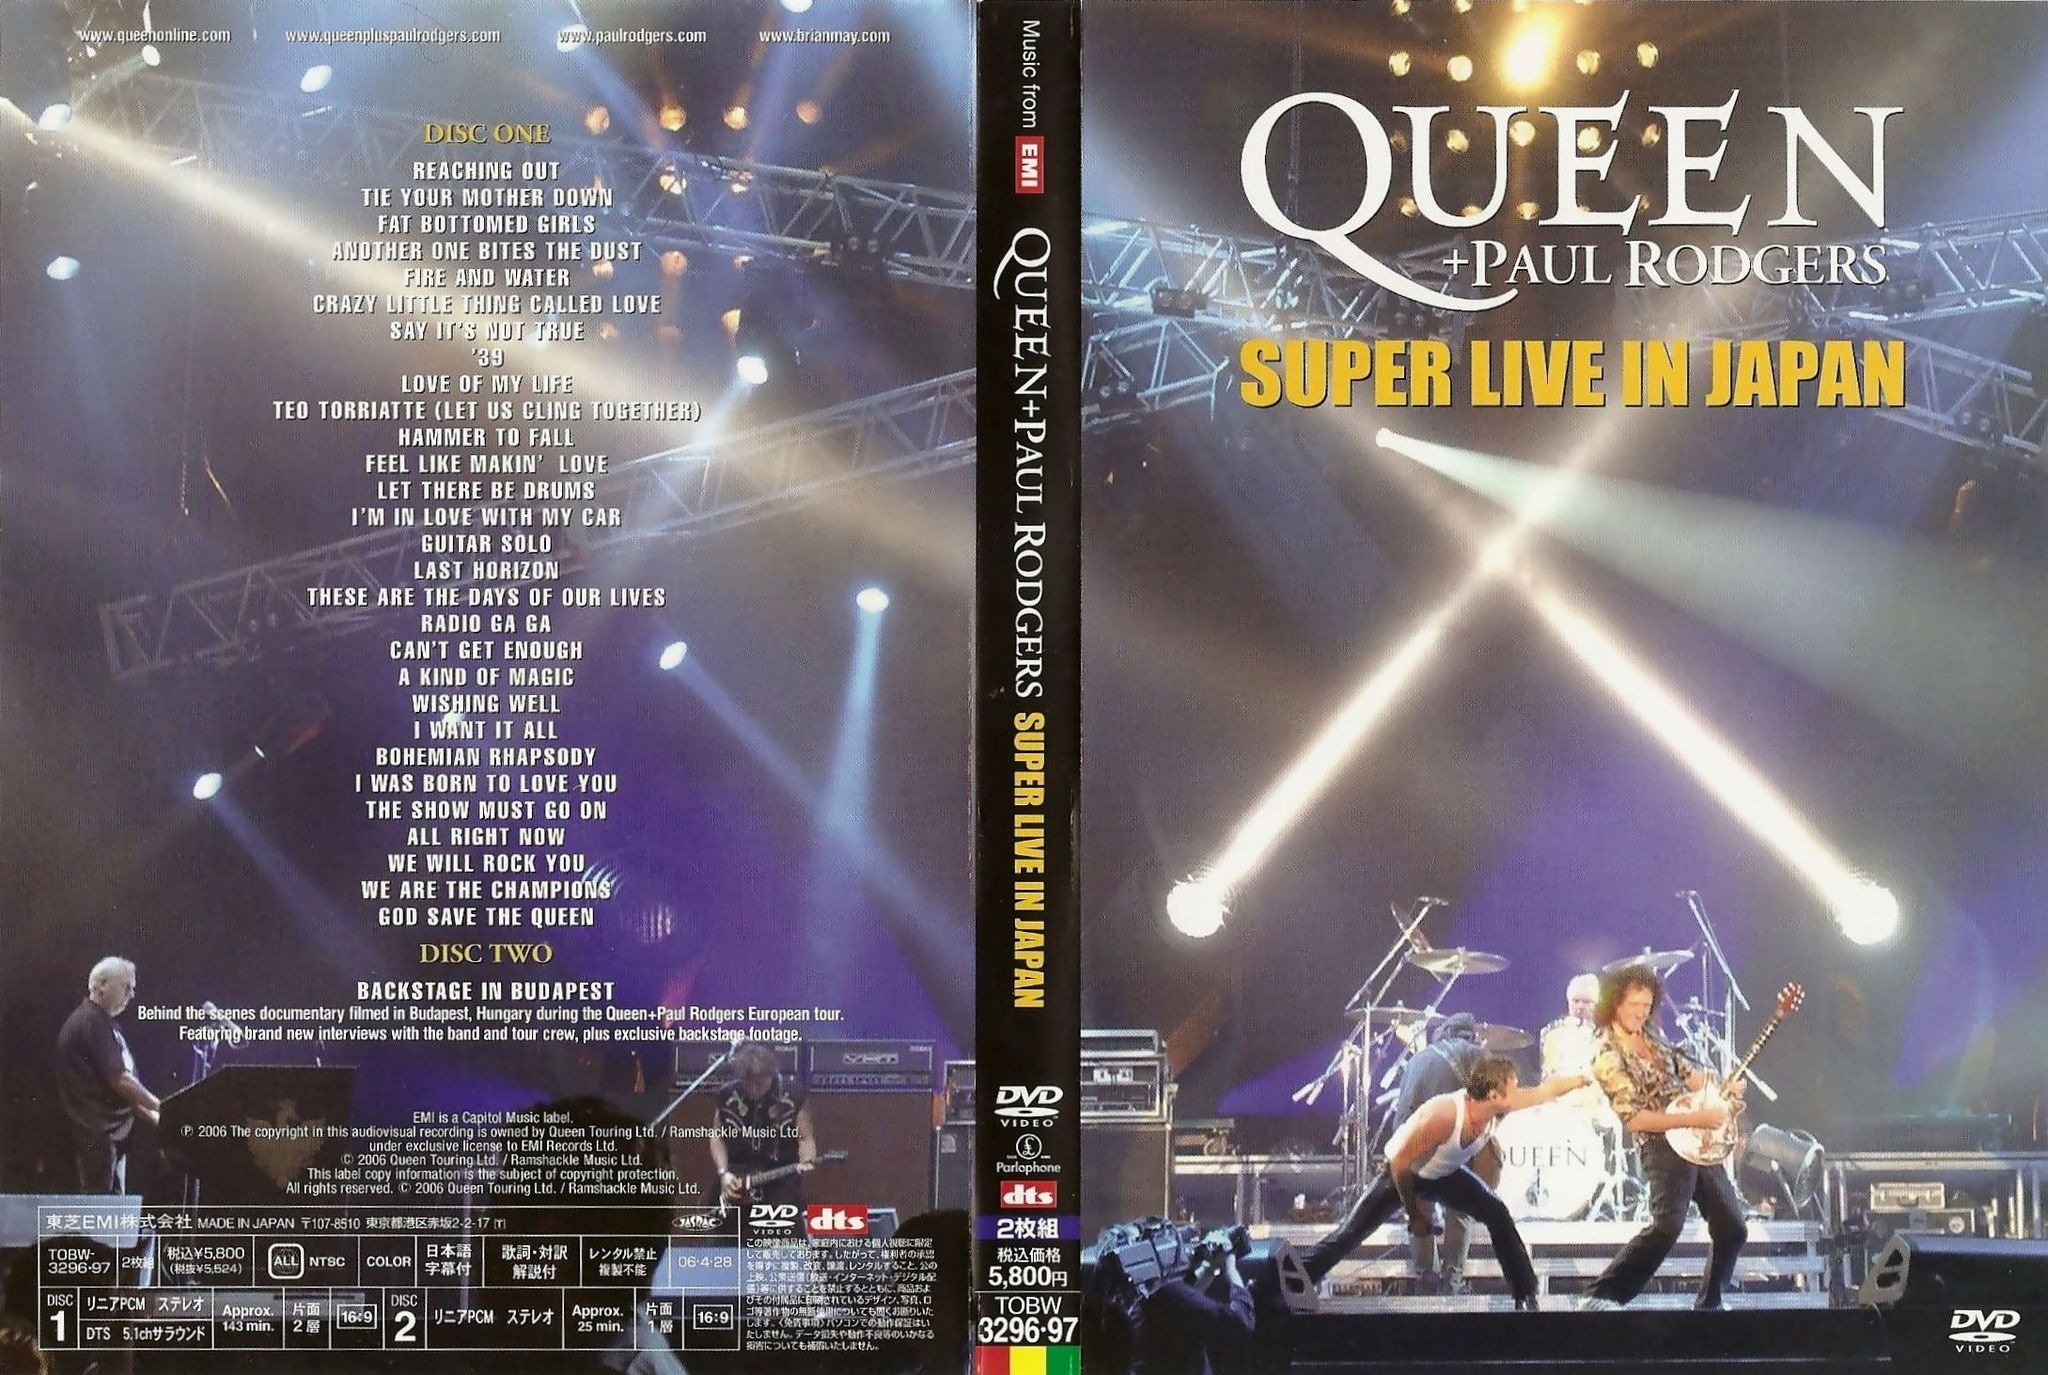 Queen + Paul Rodgers - Super Live In Japan 2005